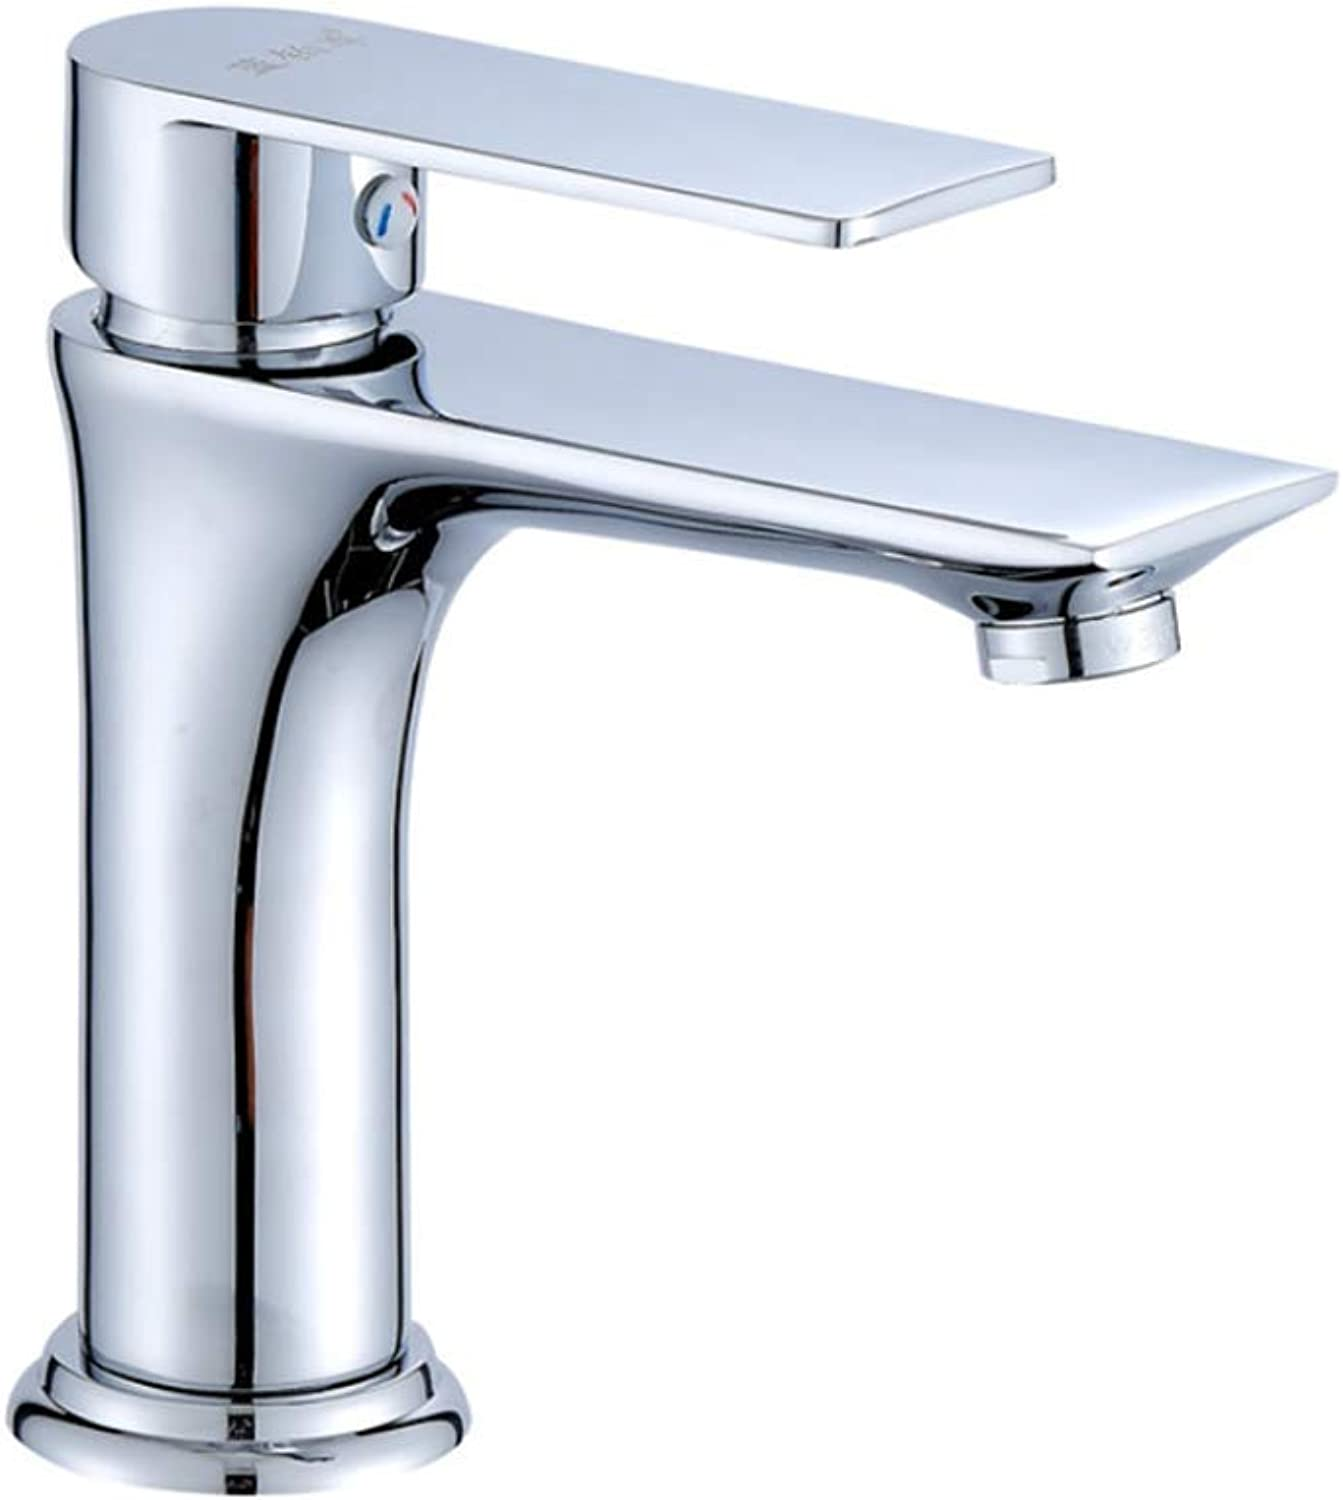 Basin Faucetcopper Single-Hole Faucet Cold and Hot Basin Washbasin Single-Hole Faucet Table Basin